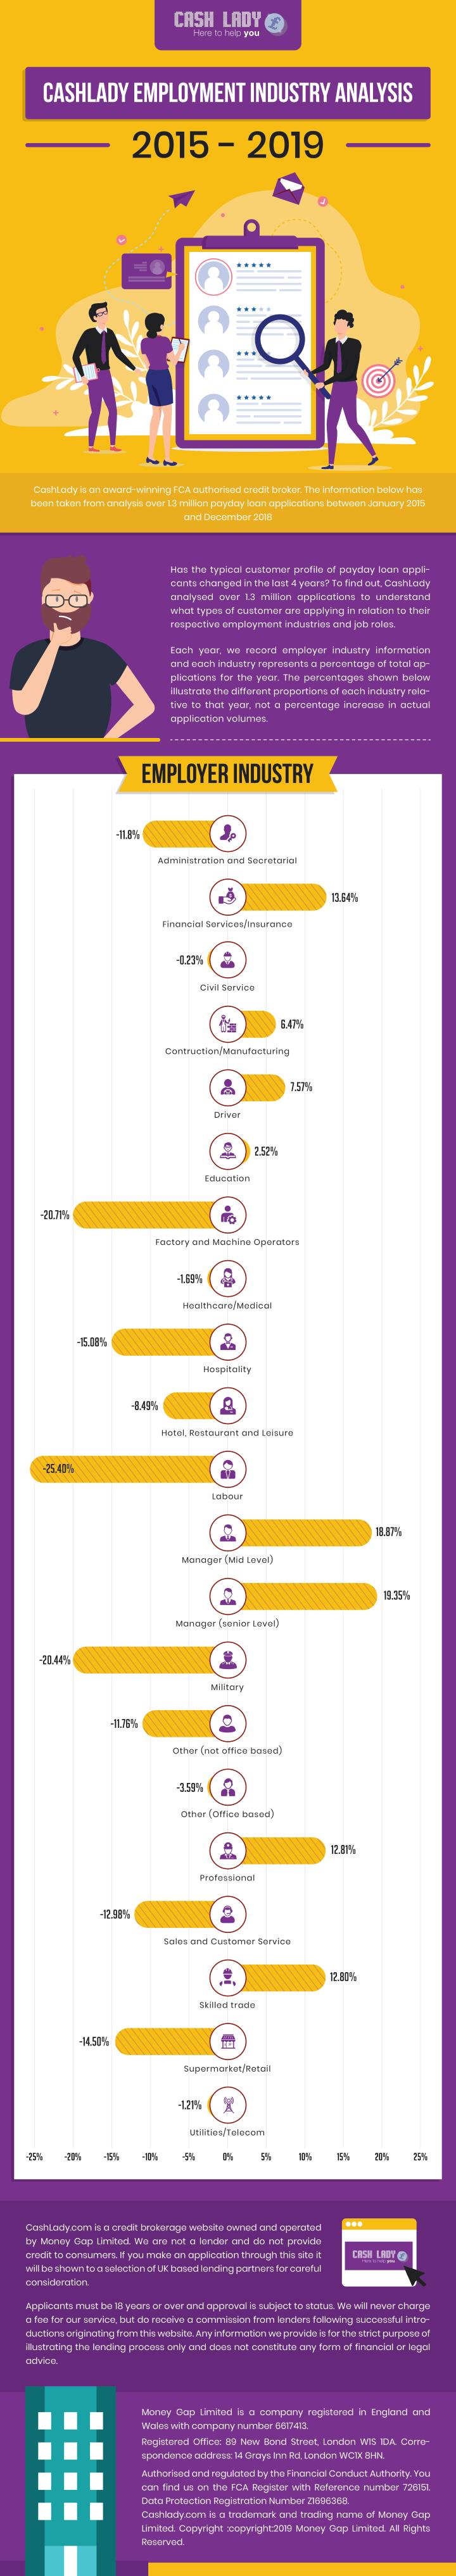 UK Employment Industry Analysis for Short Term Loans 2015-2019 Infographics